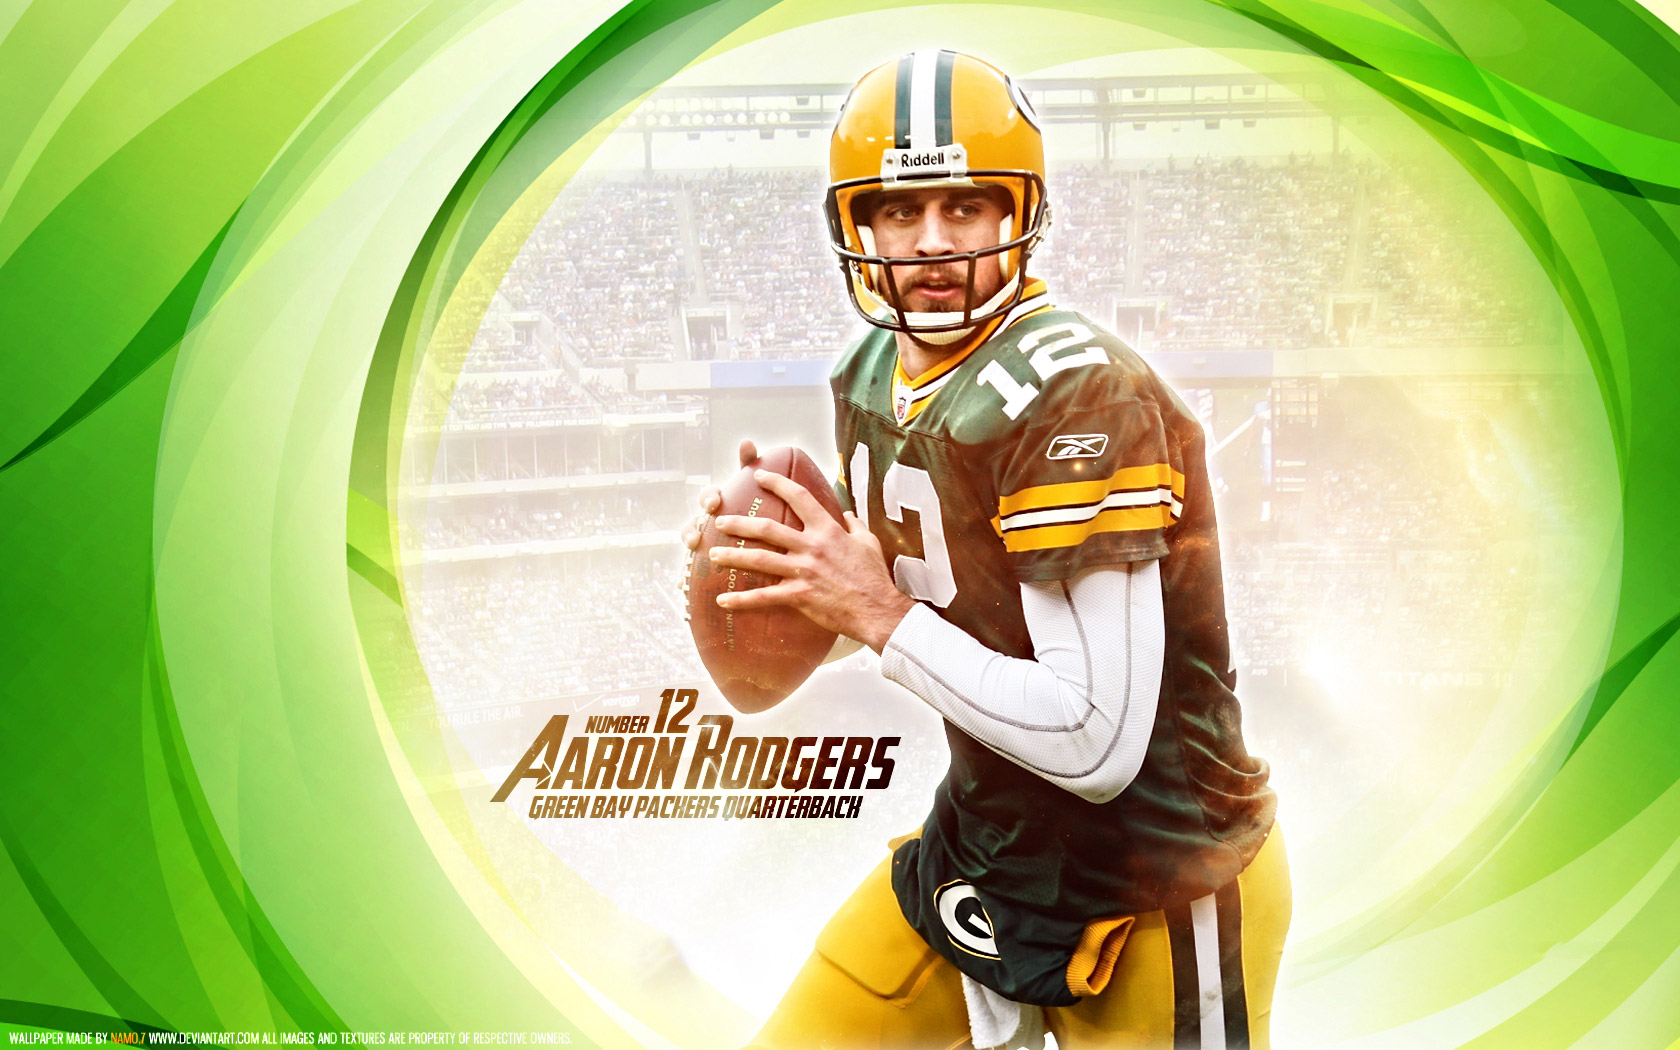 Aaron Rodgers Iphone Wallpaper Aaron Rodgers Computer Wallpapers Desktop Backgrounds